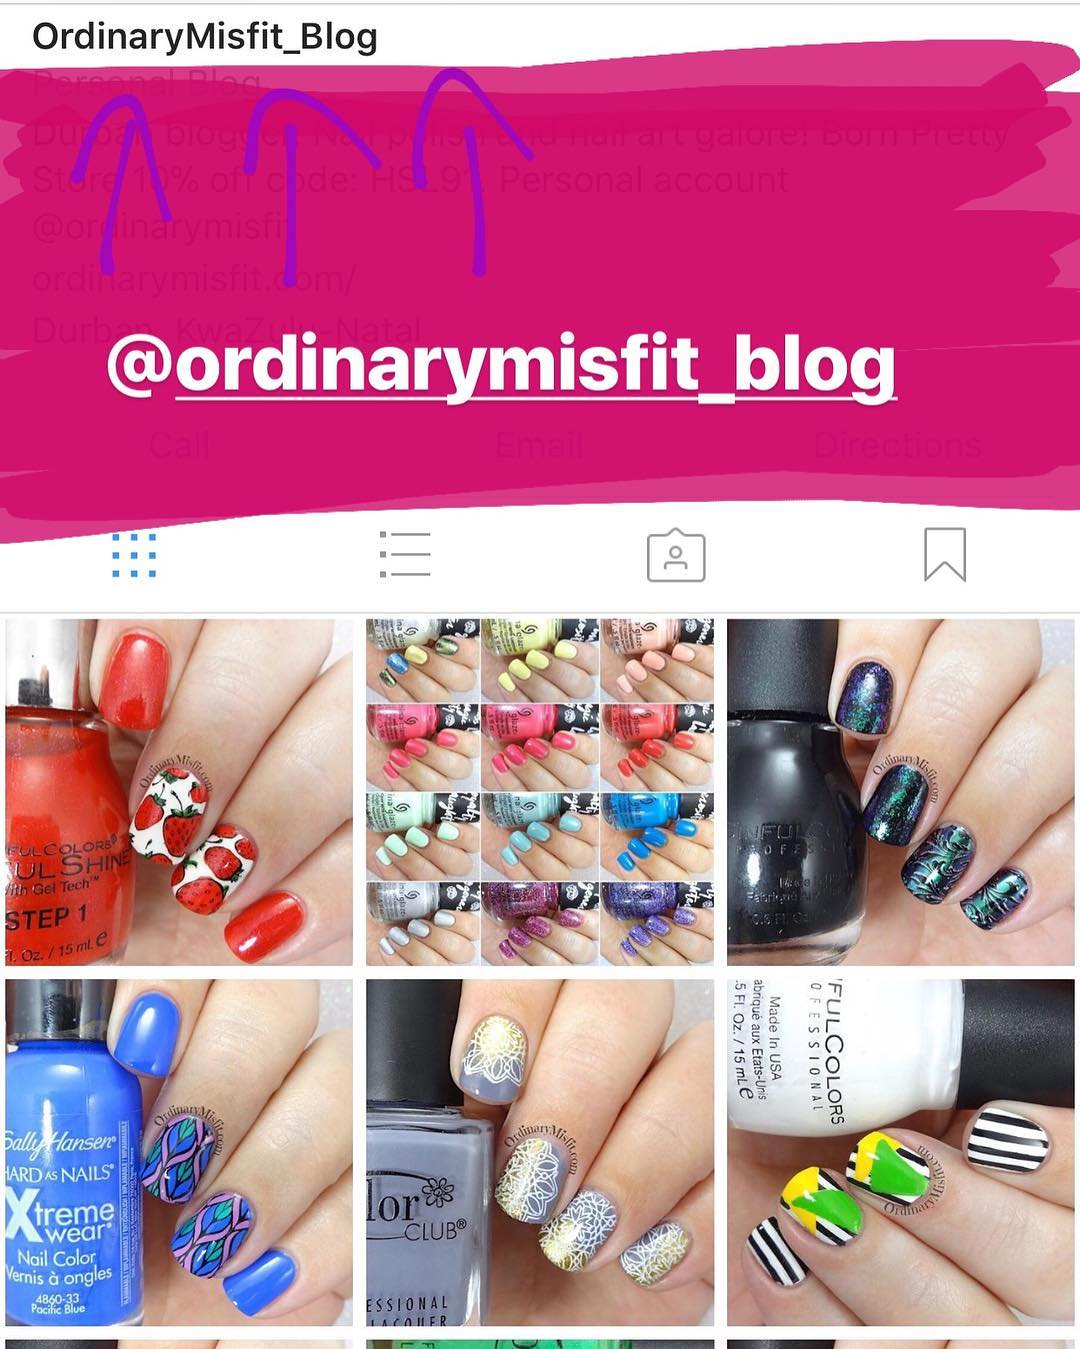 Dont forget to follow my blog account if you wanthellip